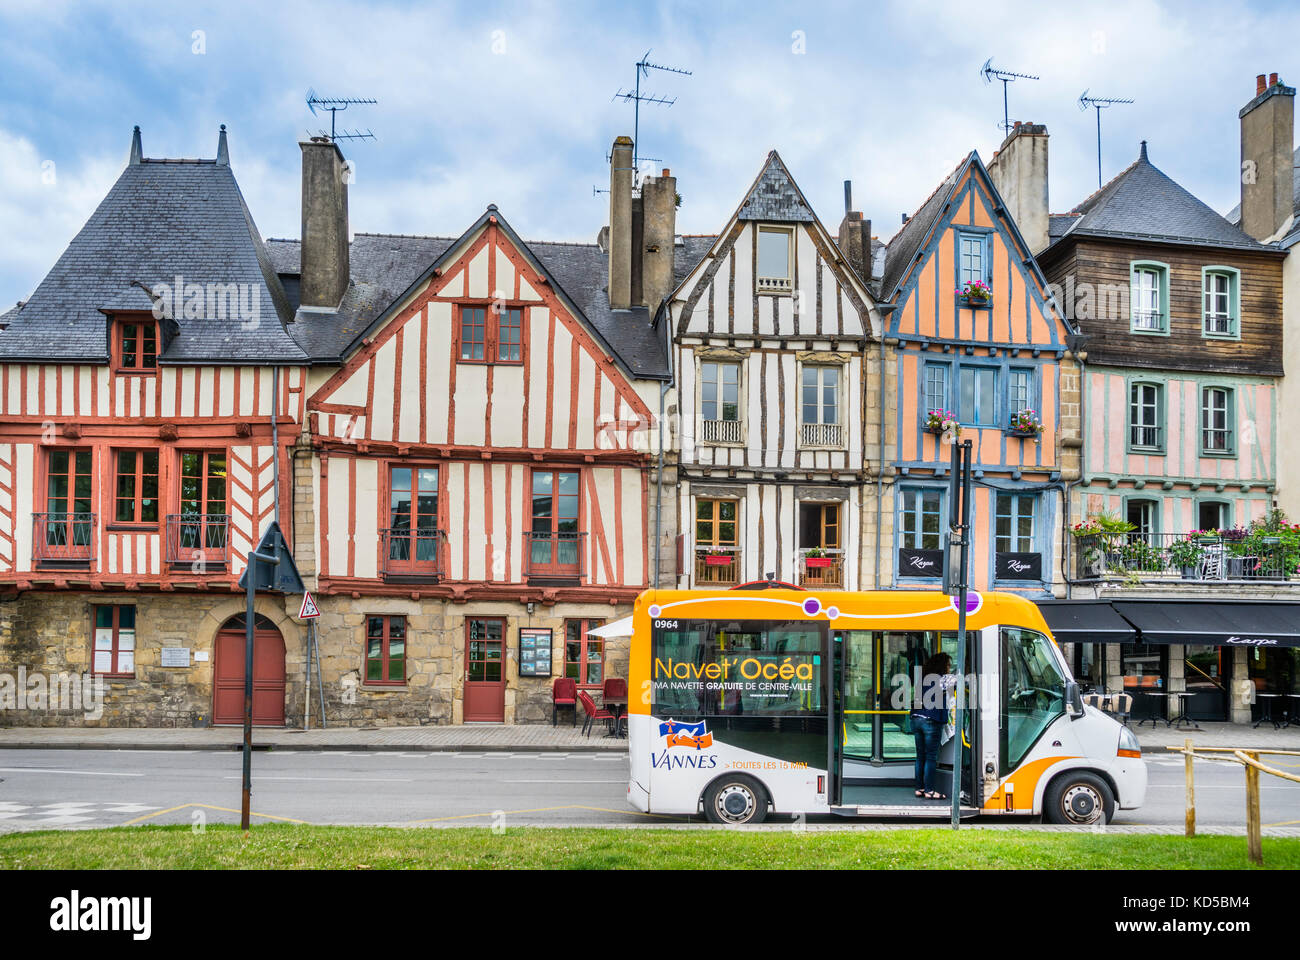 France, Brittany, Morbihan, Vannes, Vannes free shuttle bus against the backdrop of colorfull timber-framed houses - Stock Image